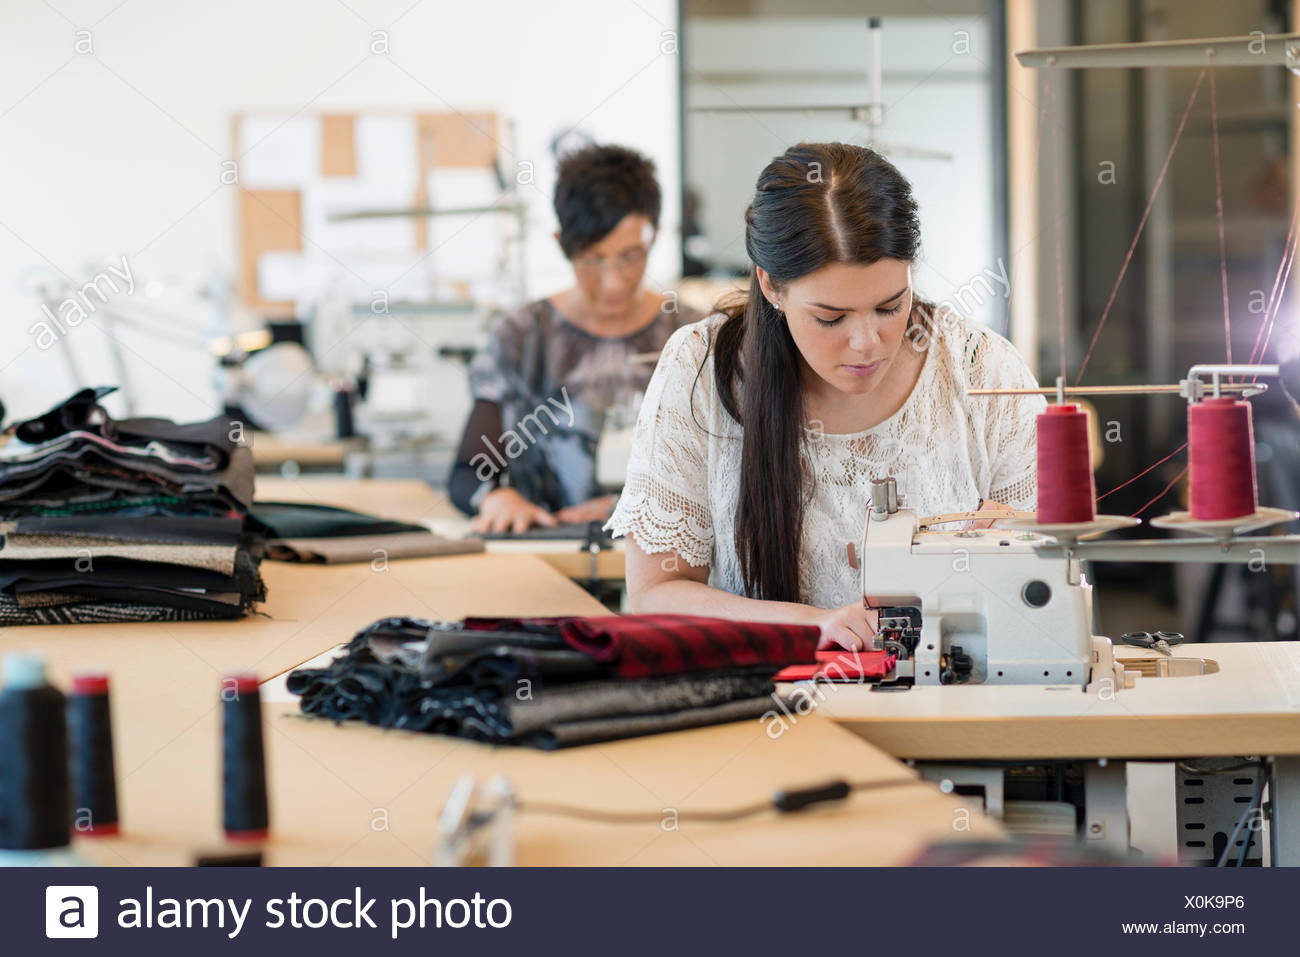 Two seamstresses using sewing machines in workshop - Stock Image